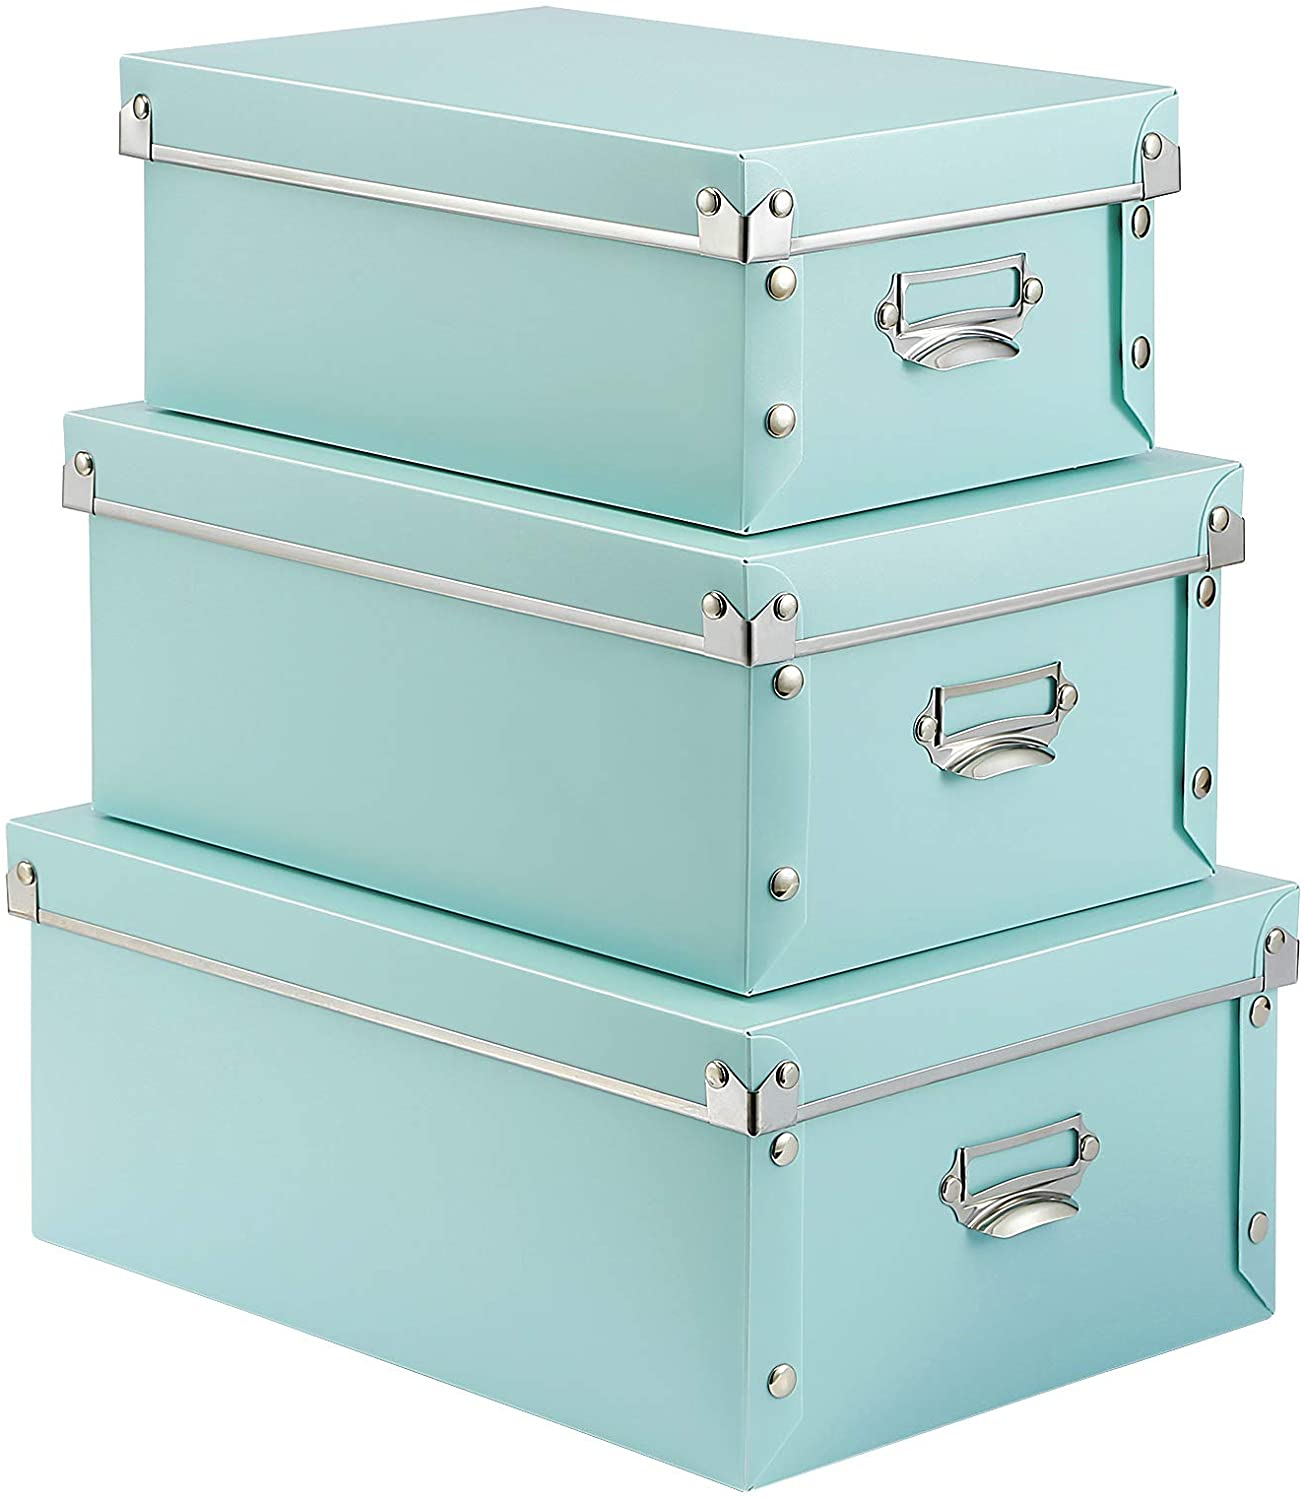 SEEKIND Foldable Storage Box Limited time sale with Max 57% OFF 3 Decorative Handles Lids and